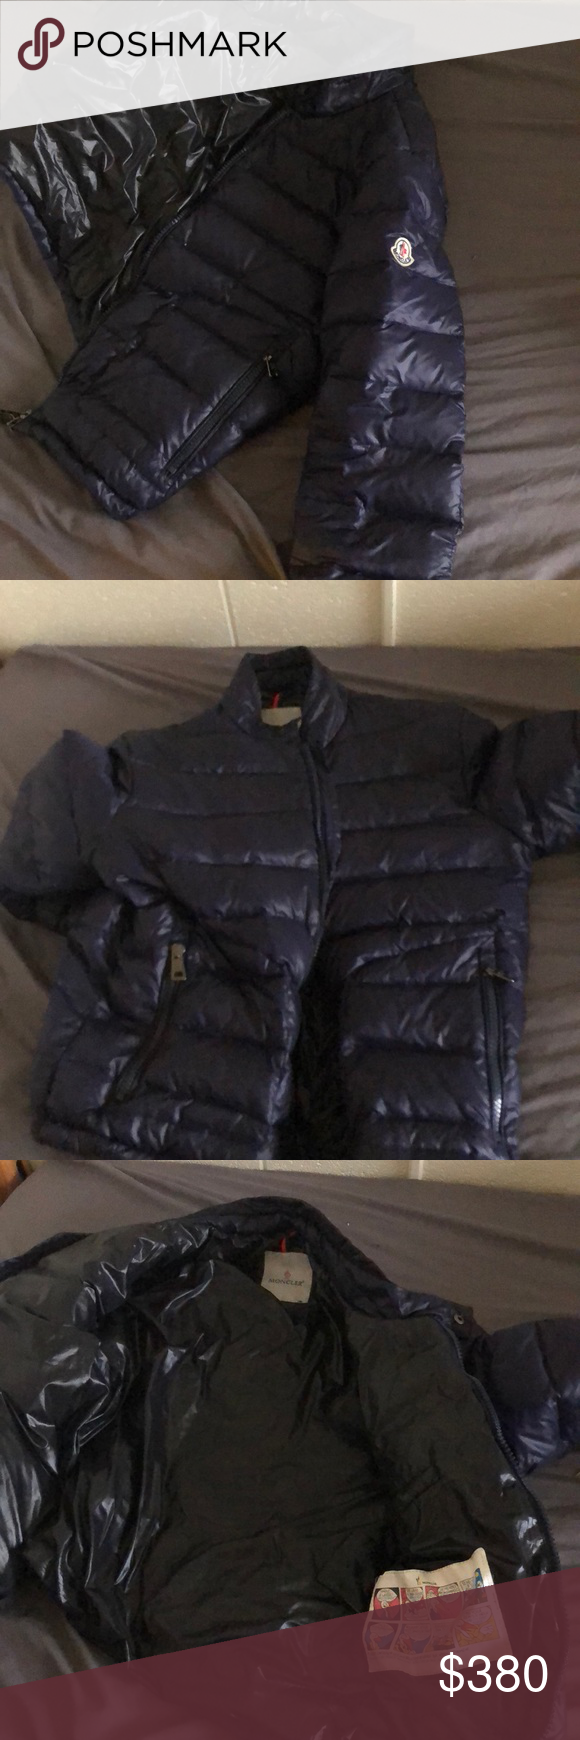 moncler jacket true to size